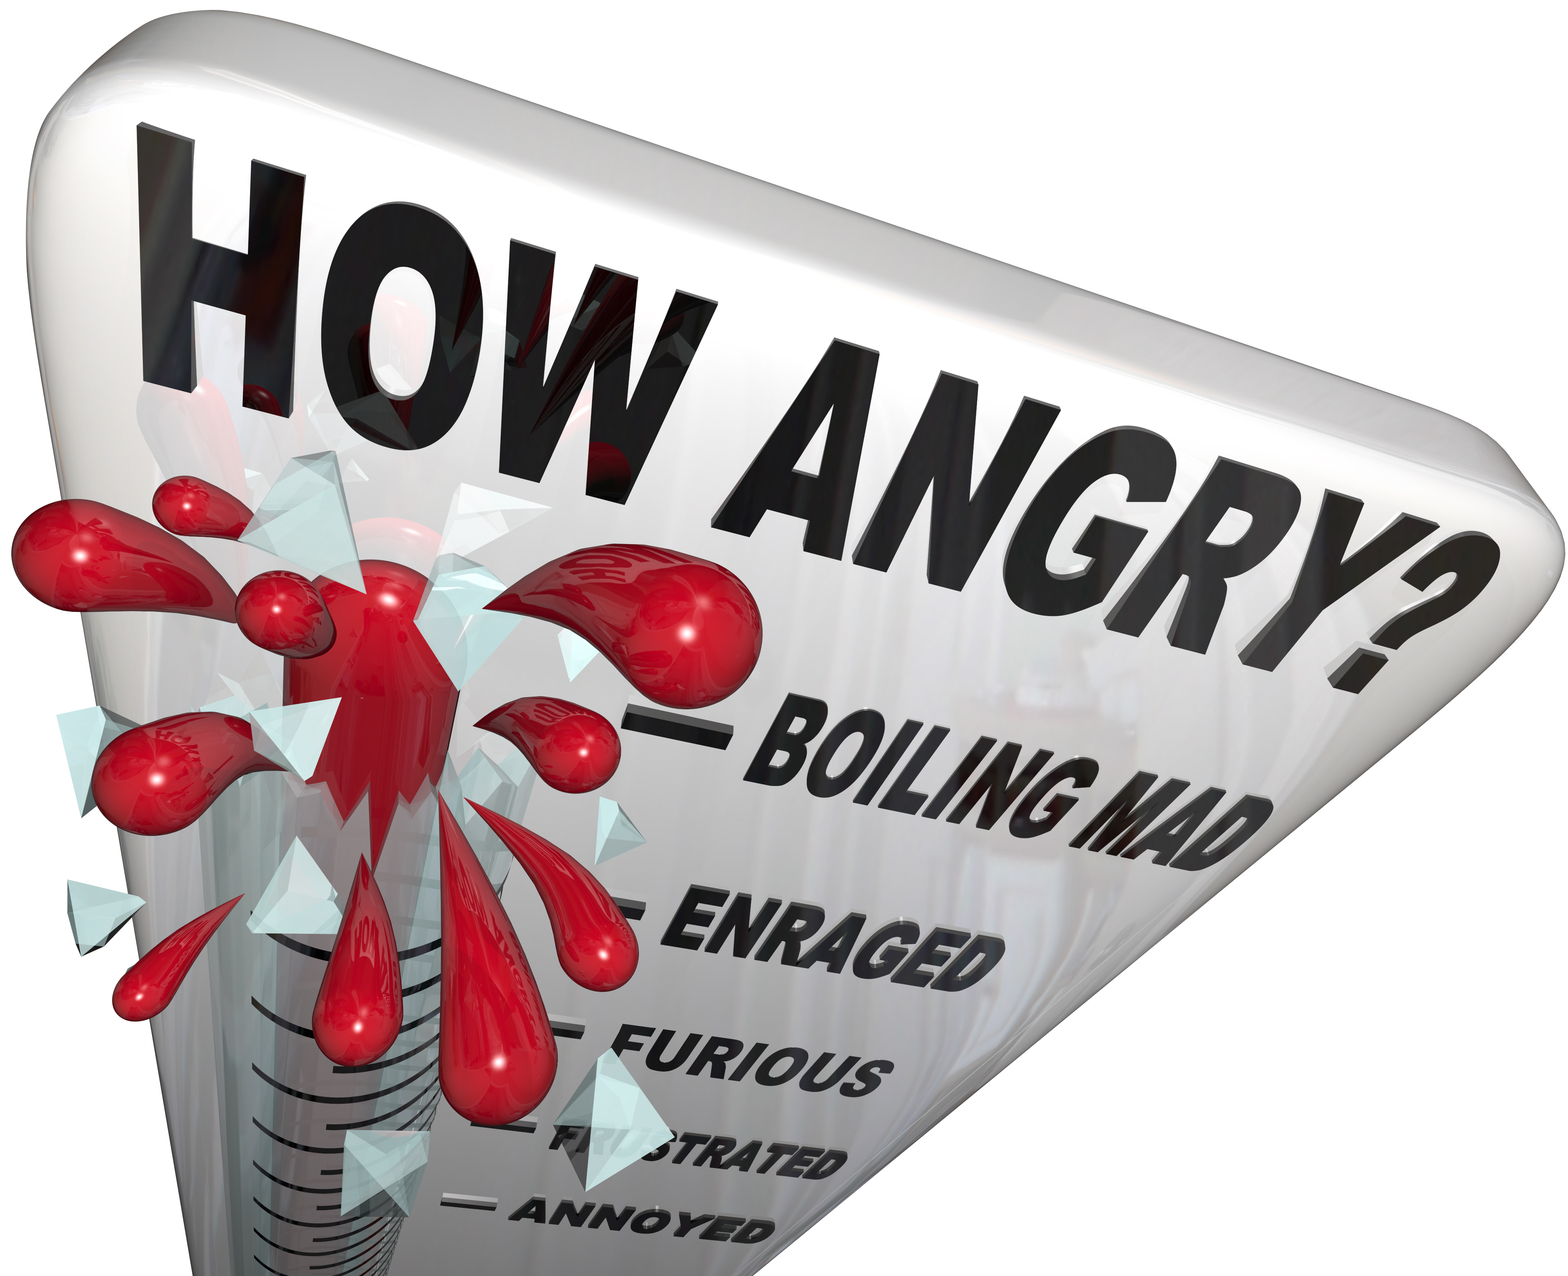 Emotions Such As Fear Anger Grief And Many Others Can Negatively